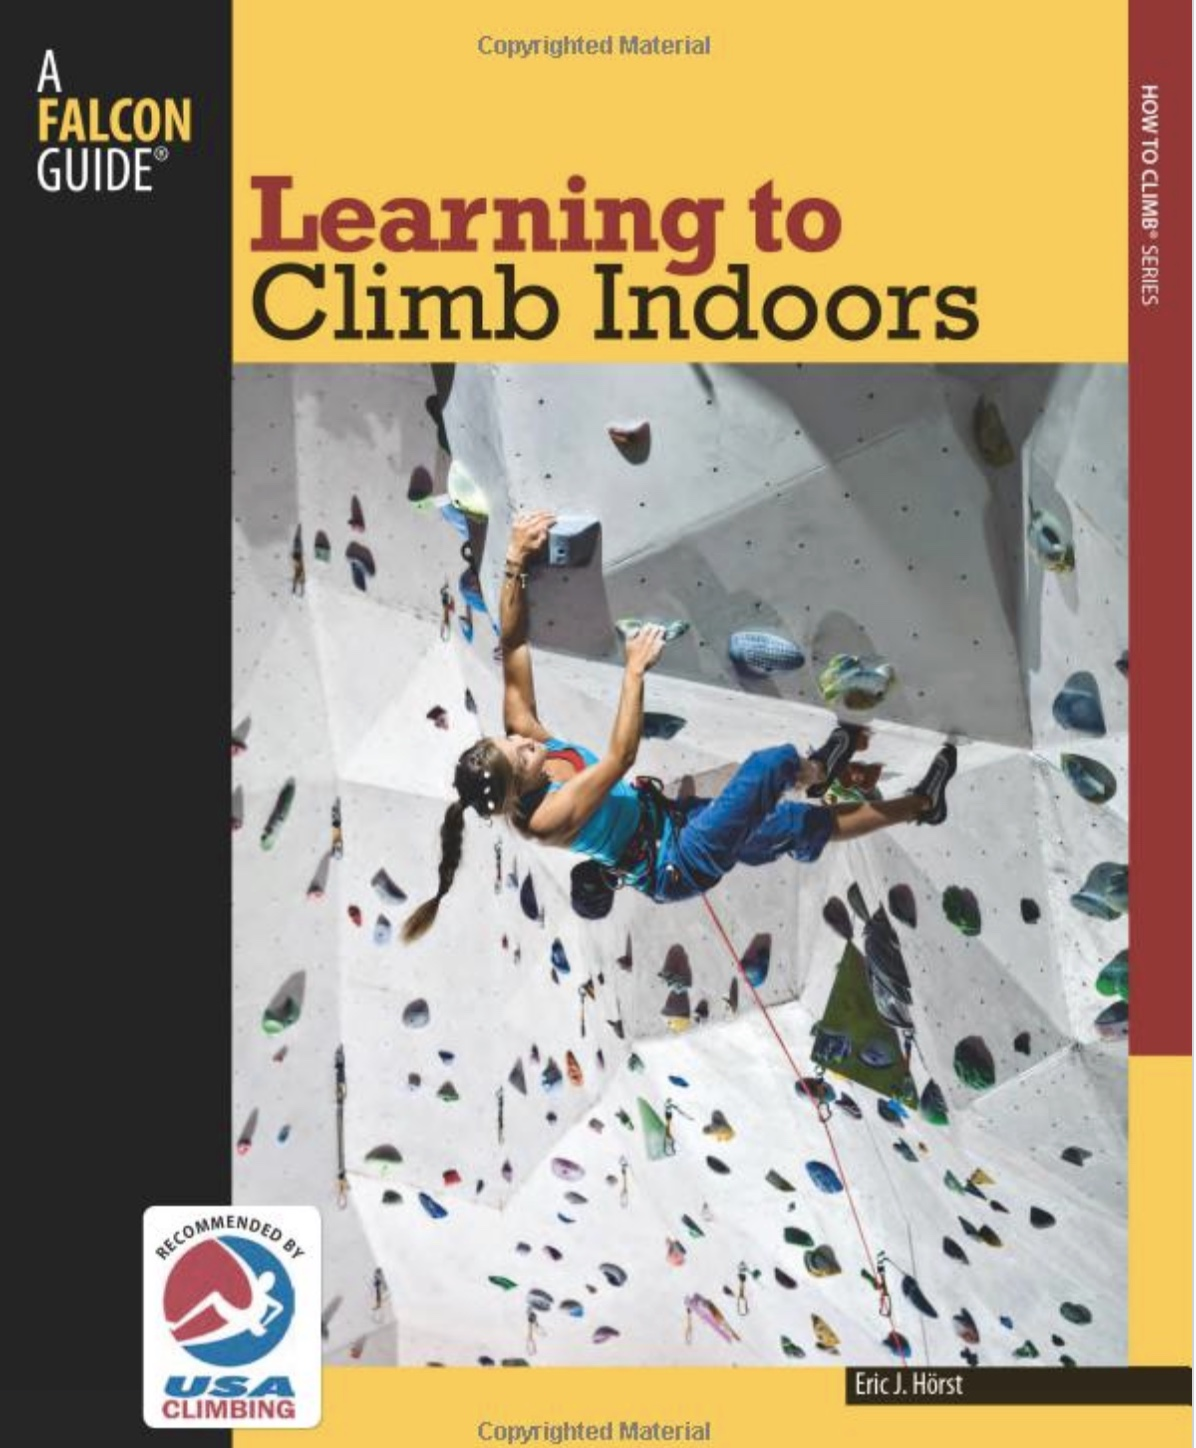 Learning to Climb Indoors by Eric Horst. Falcon Publishing.